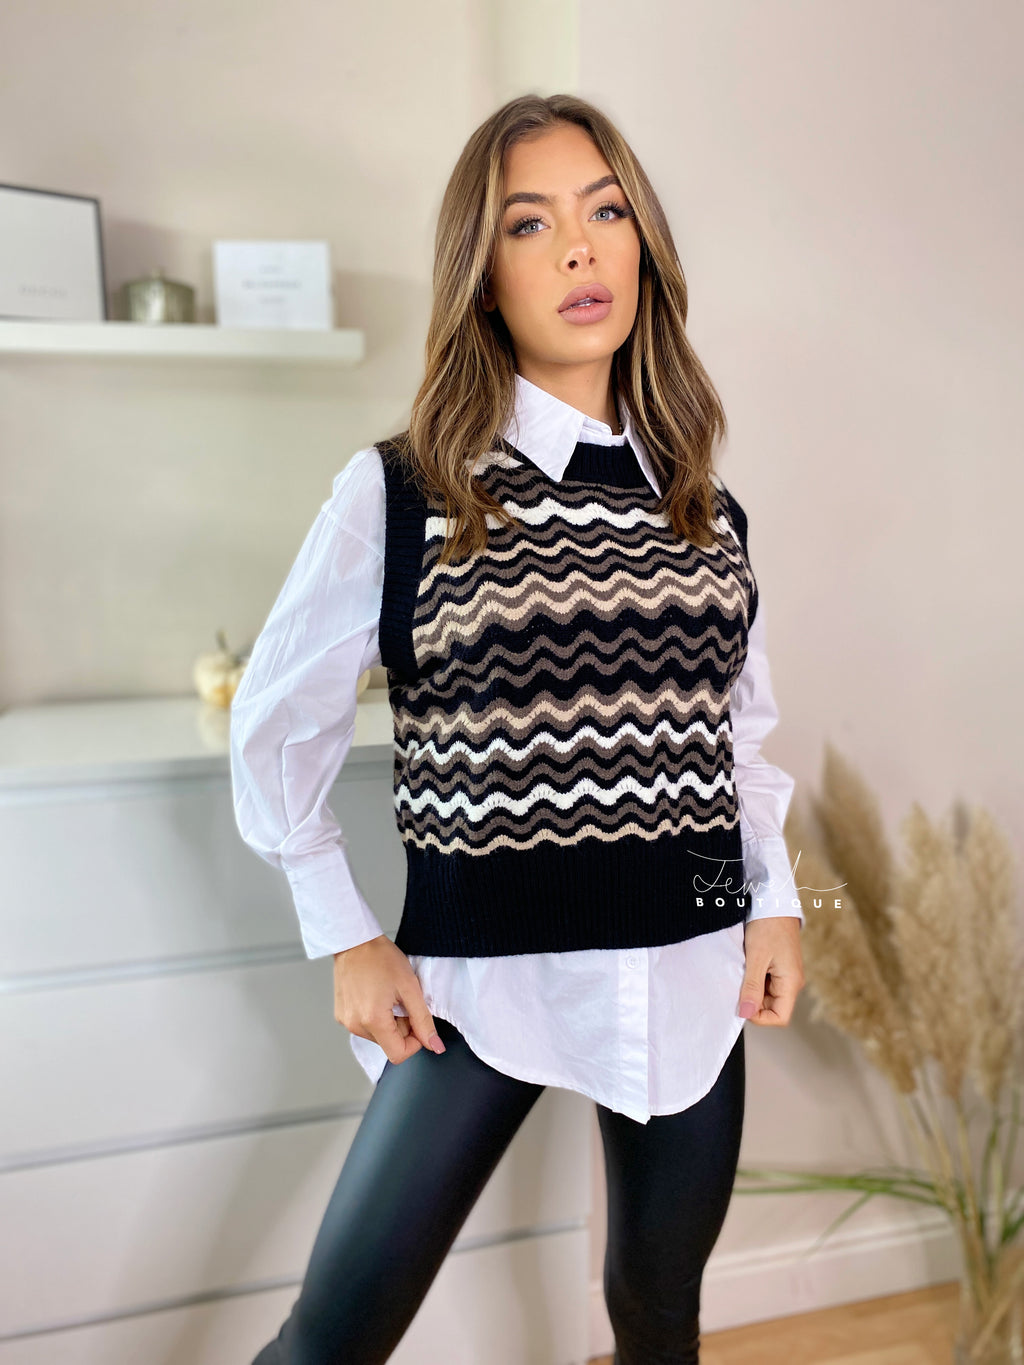 Women's stylish black knitted vest and white shirt set